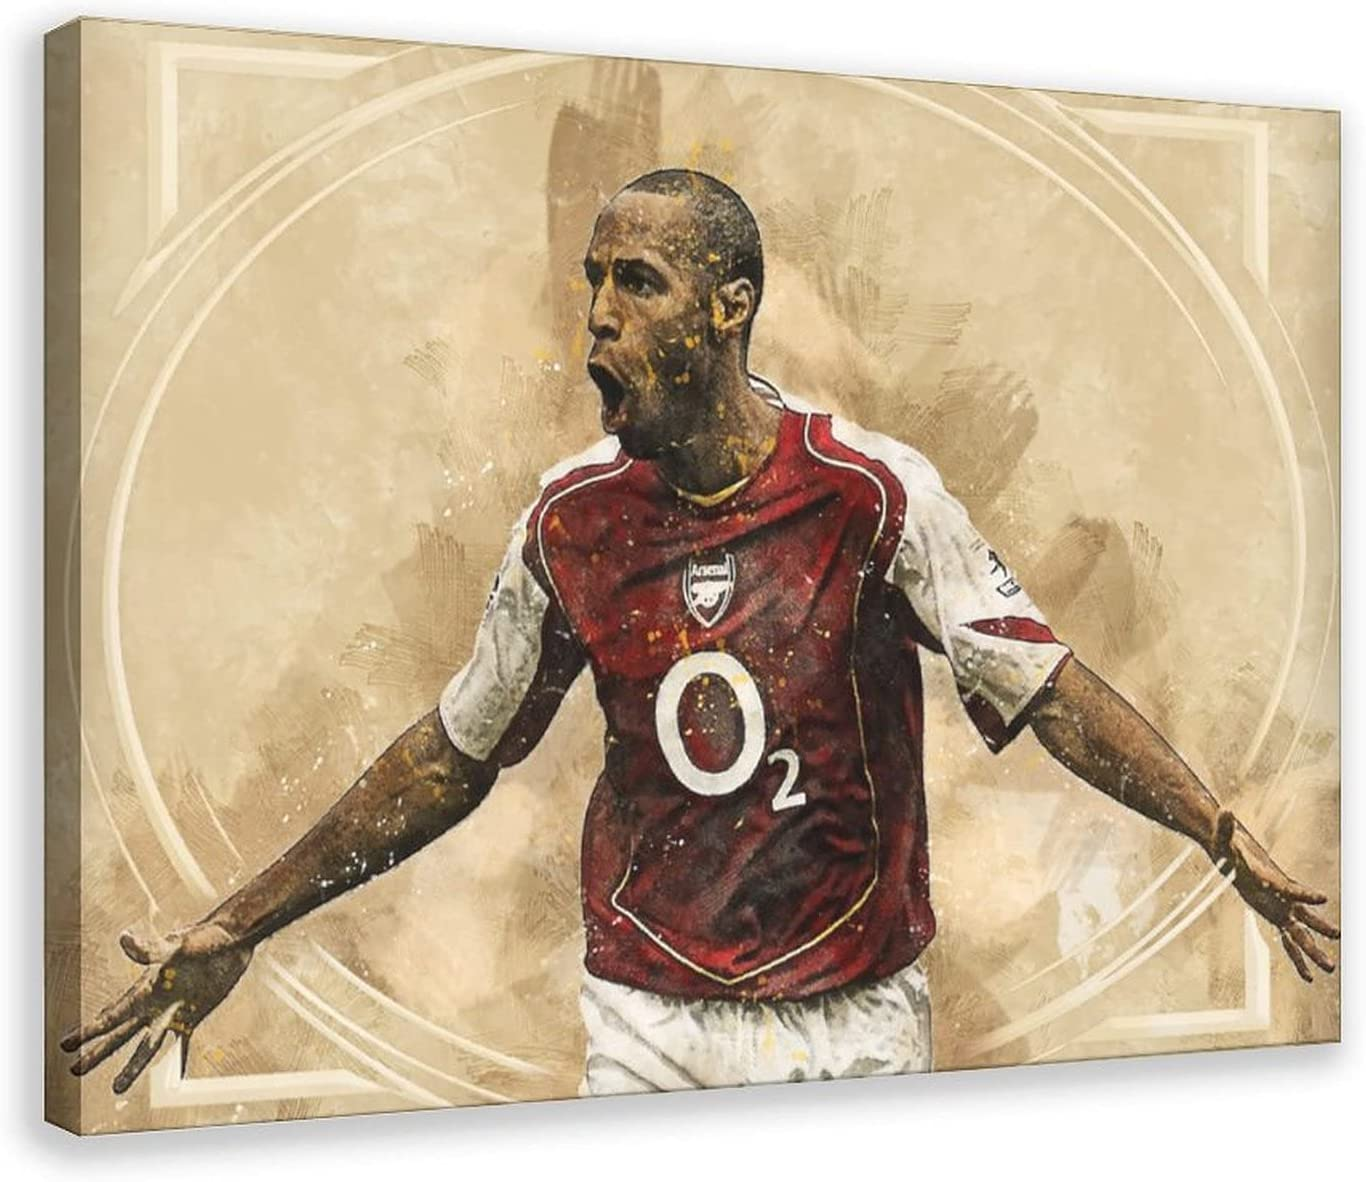 Thierry Henry Football Star Player Art 20 Poster Sale price Sports Portrait online shopping